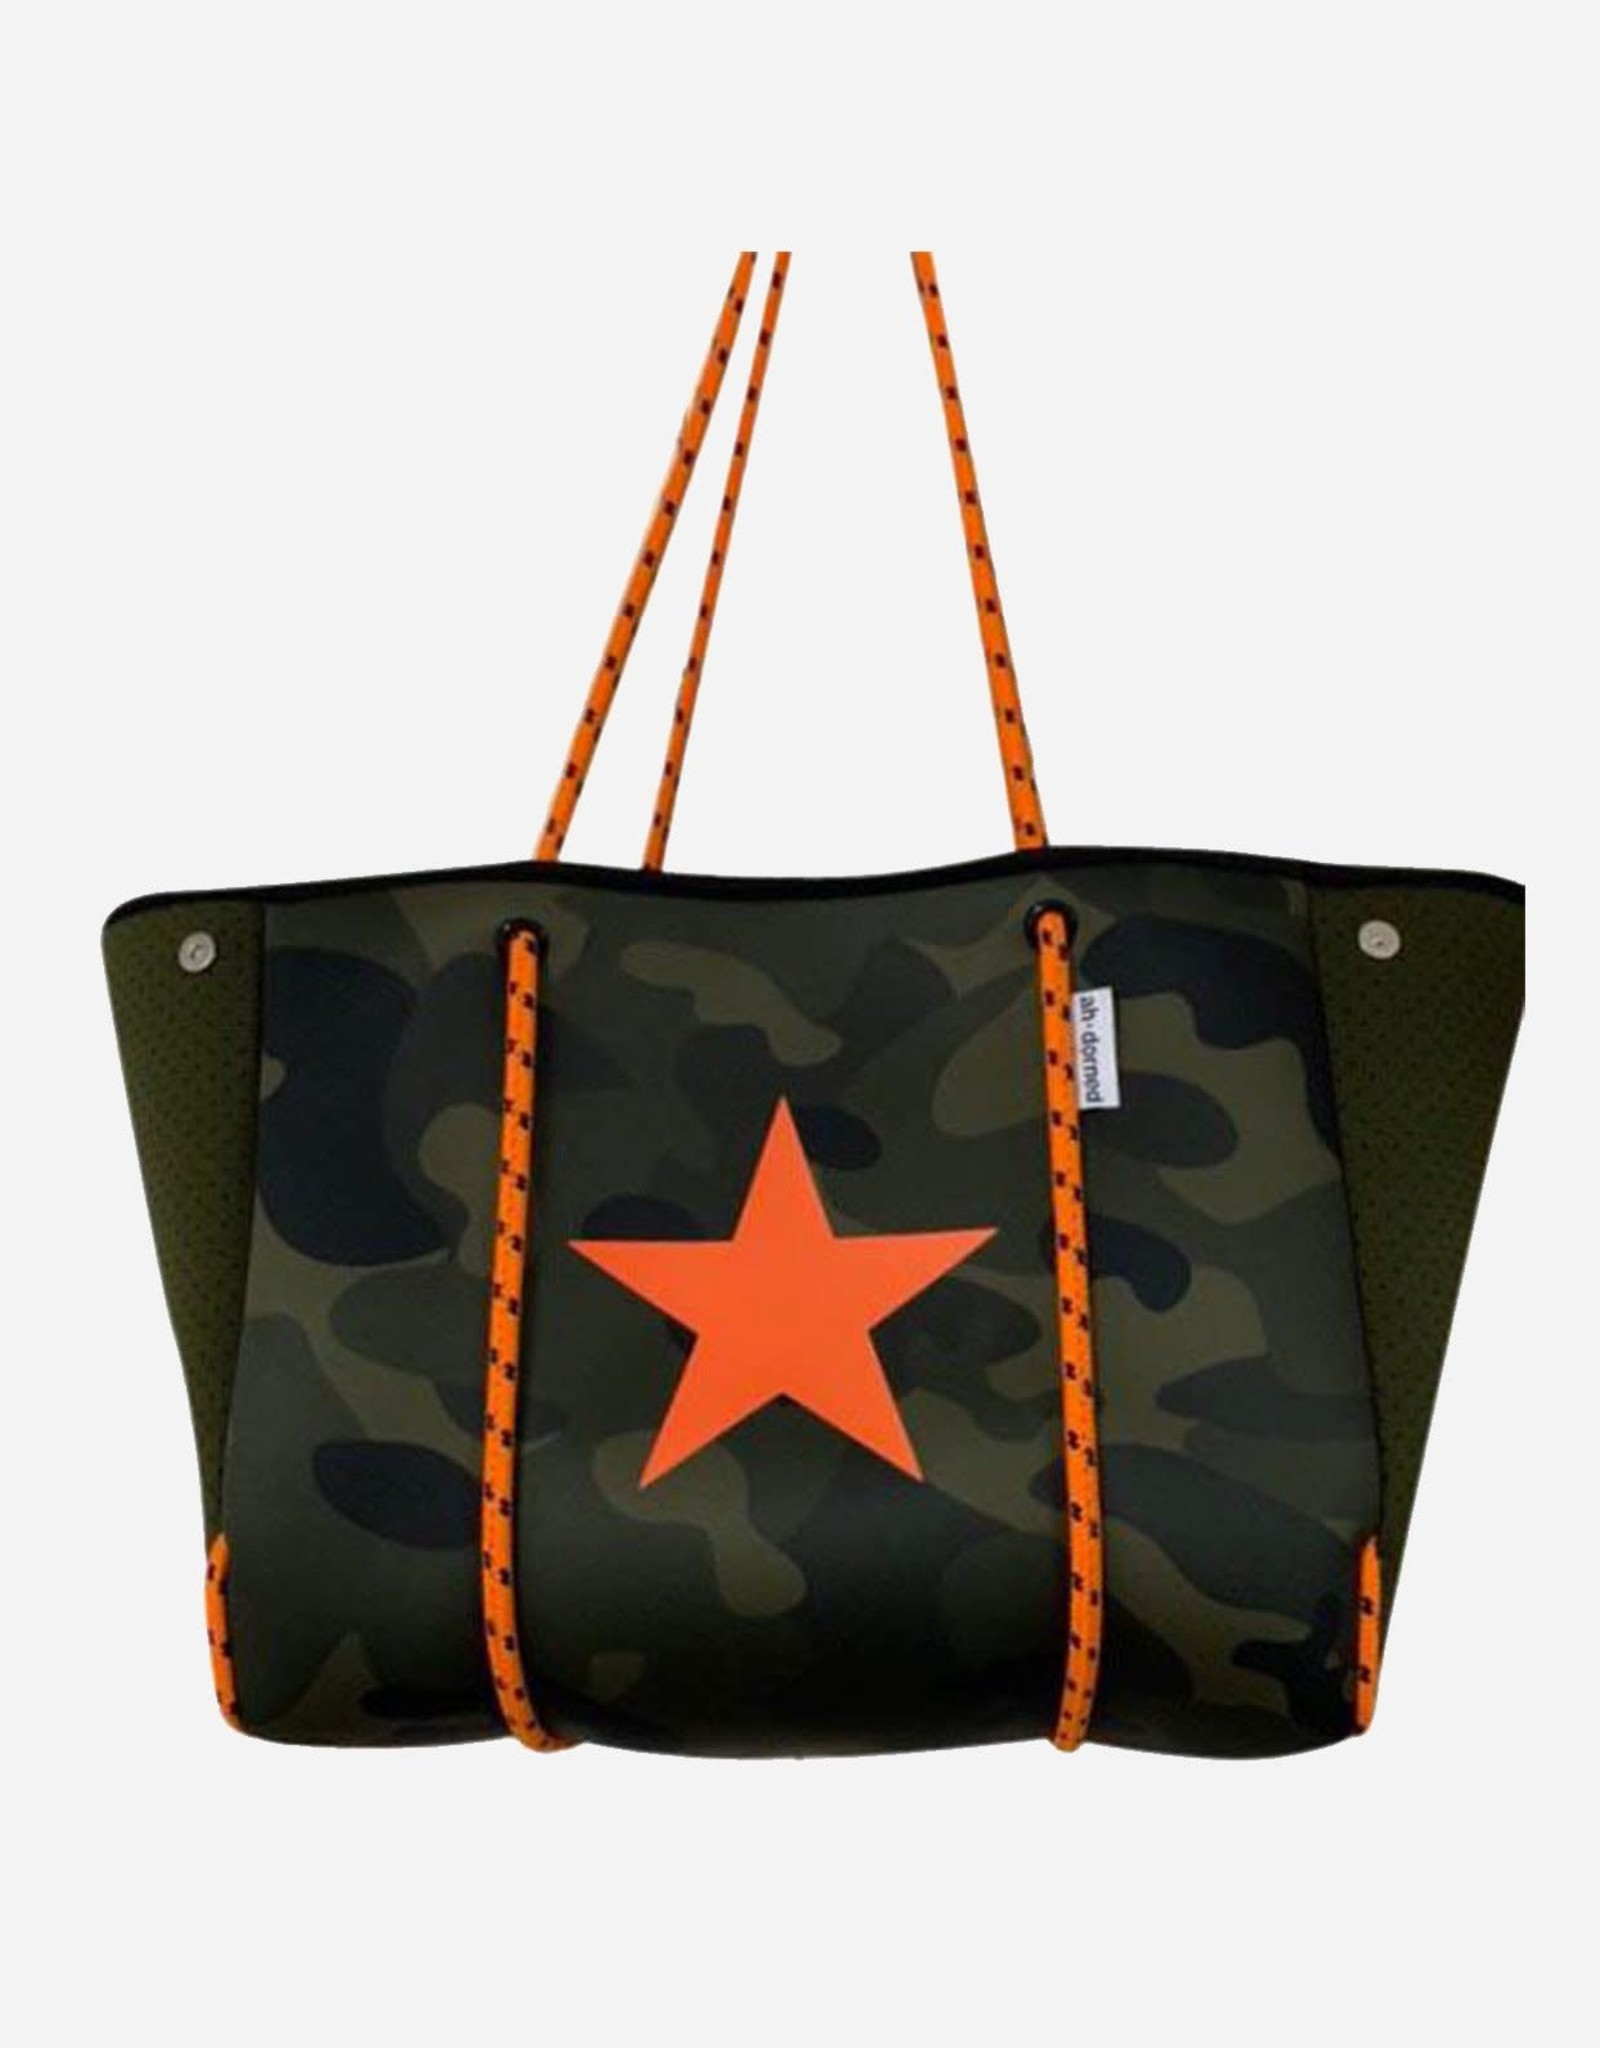 Neoprene Tote in Army Camo